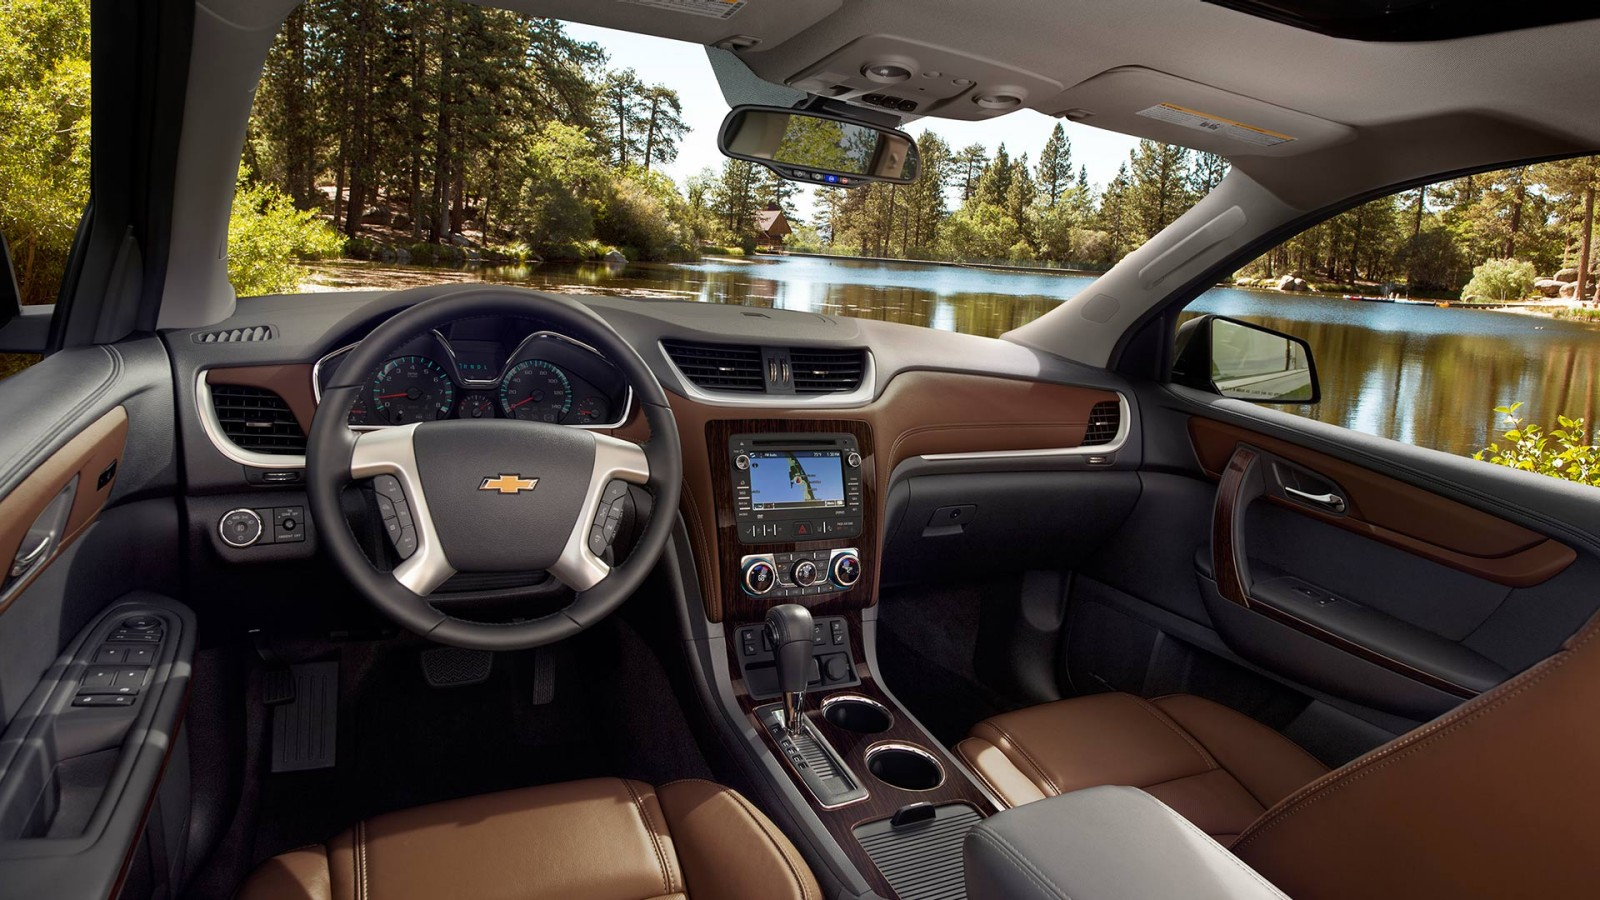 Interior of the 2016 Chevy Traverse